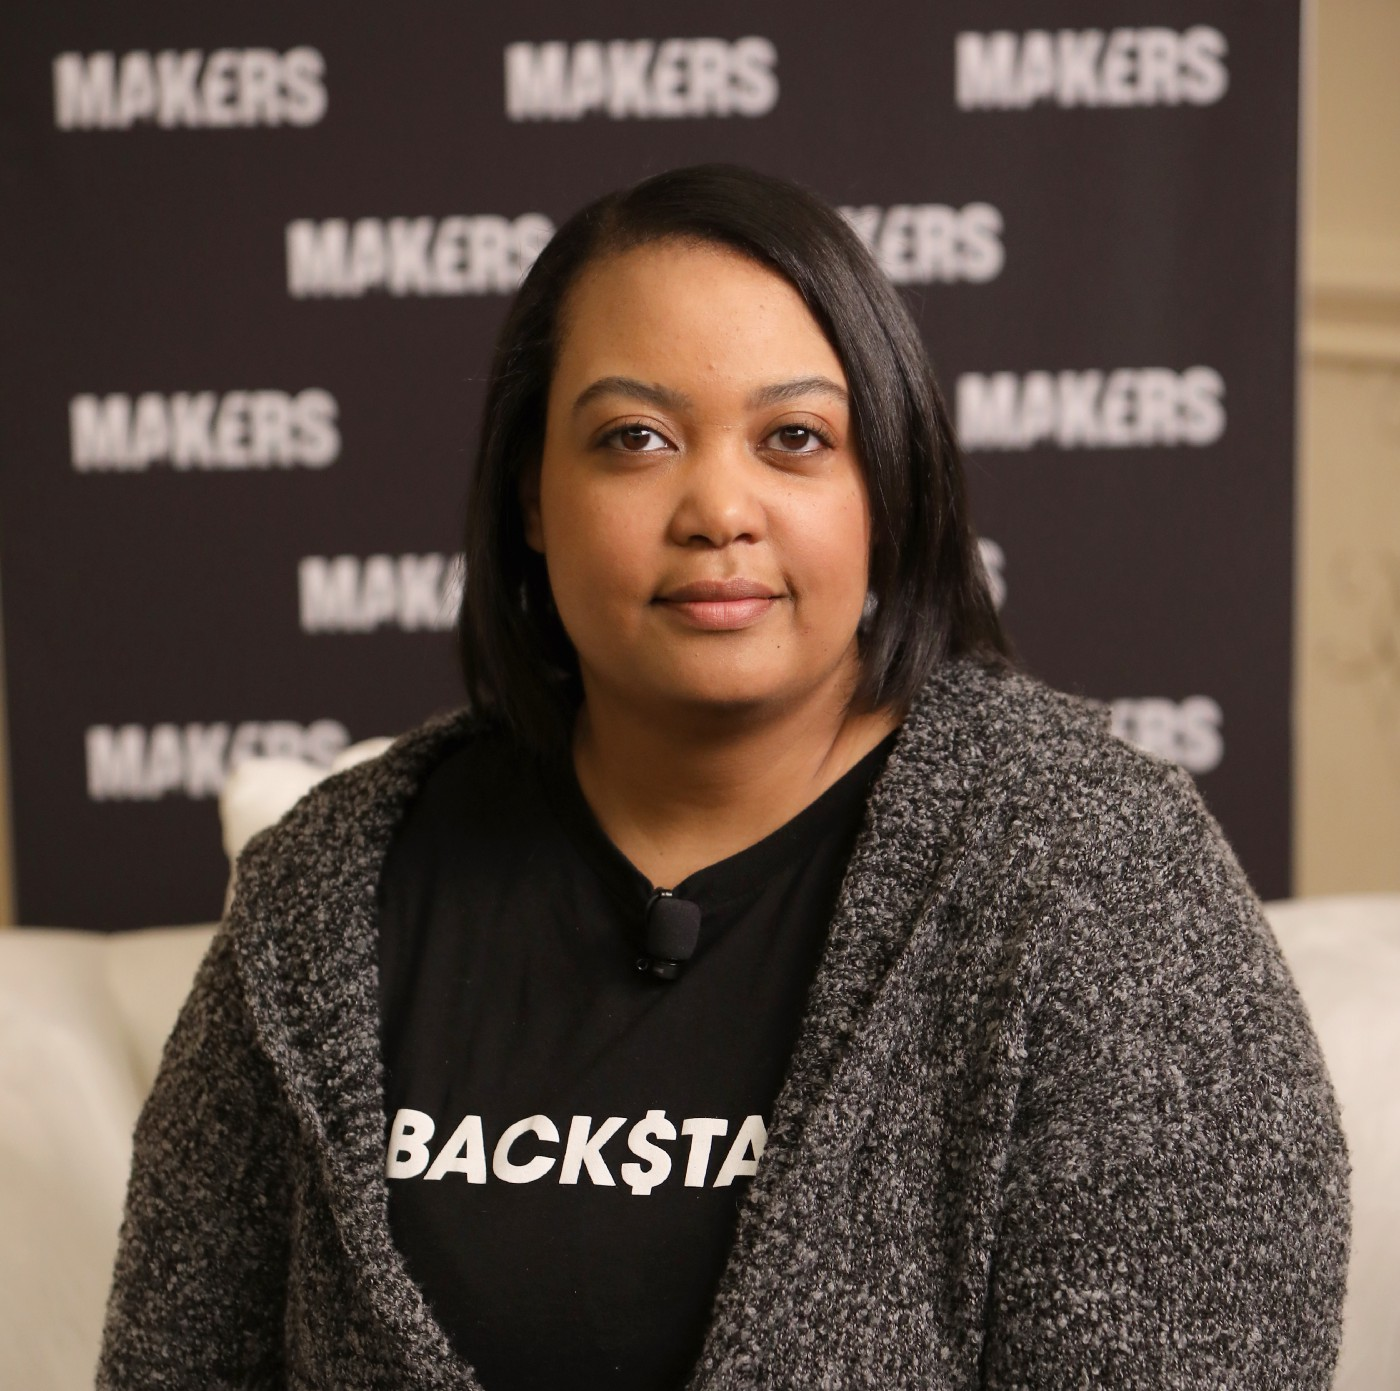 A portrait photo of Backstage Capital founder and CEO, Arlan Hamilton, at The 2019 MAKERS Conference on February 7, 2019.